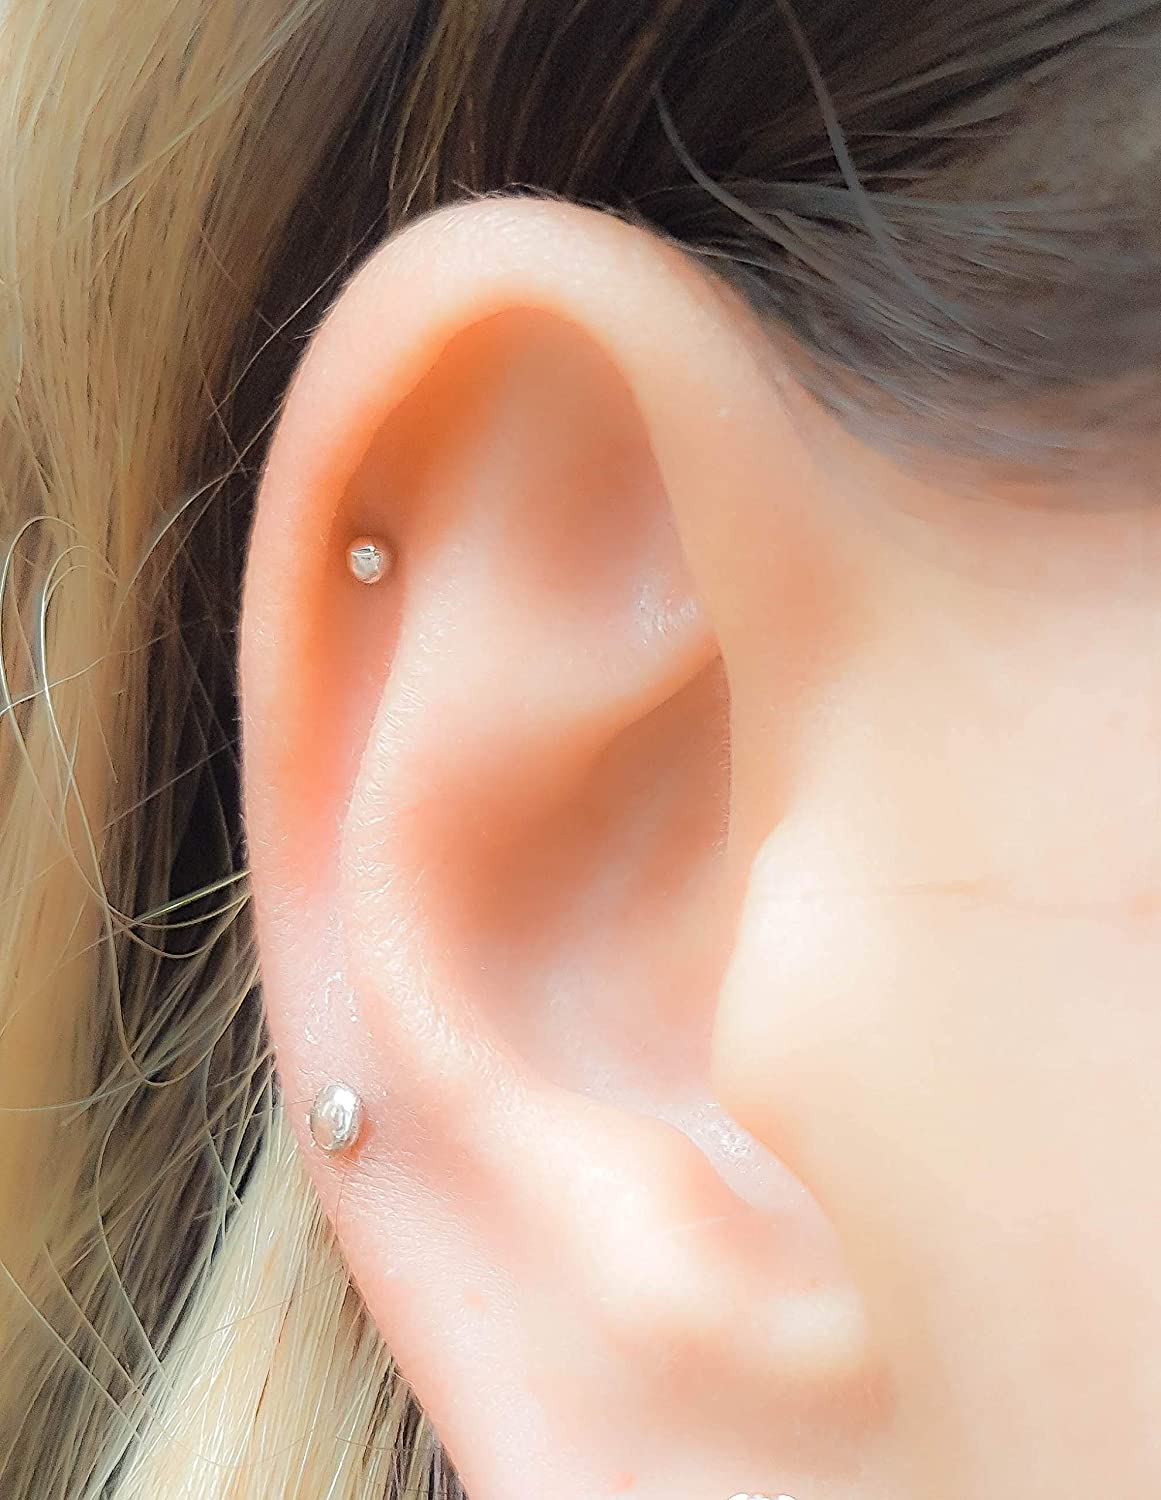 Helix Cartilage Stud Super Tiny Dot Earring Piercing 2mm 3mm 4mm